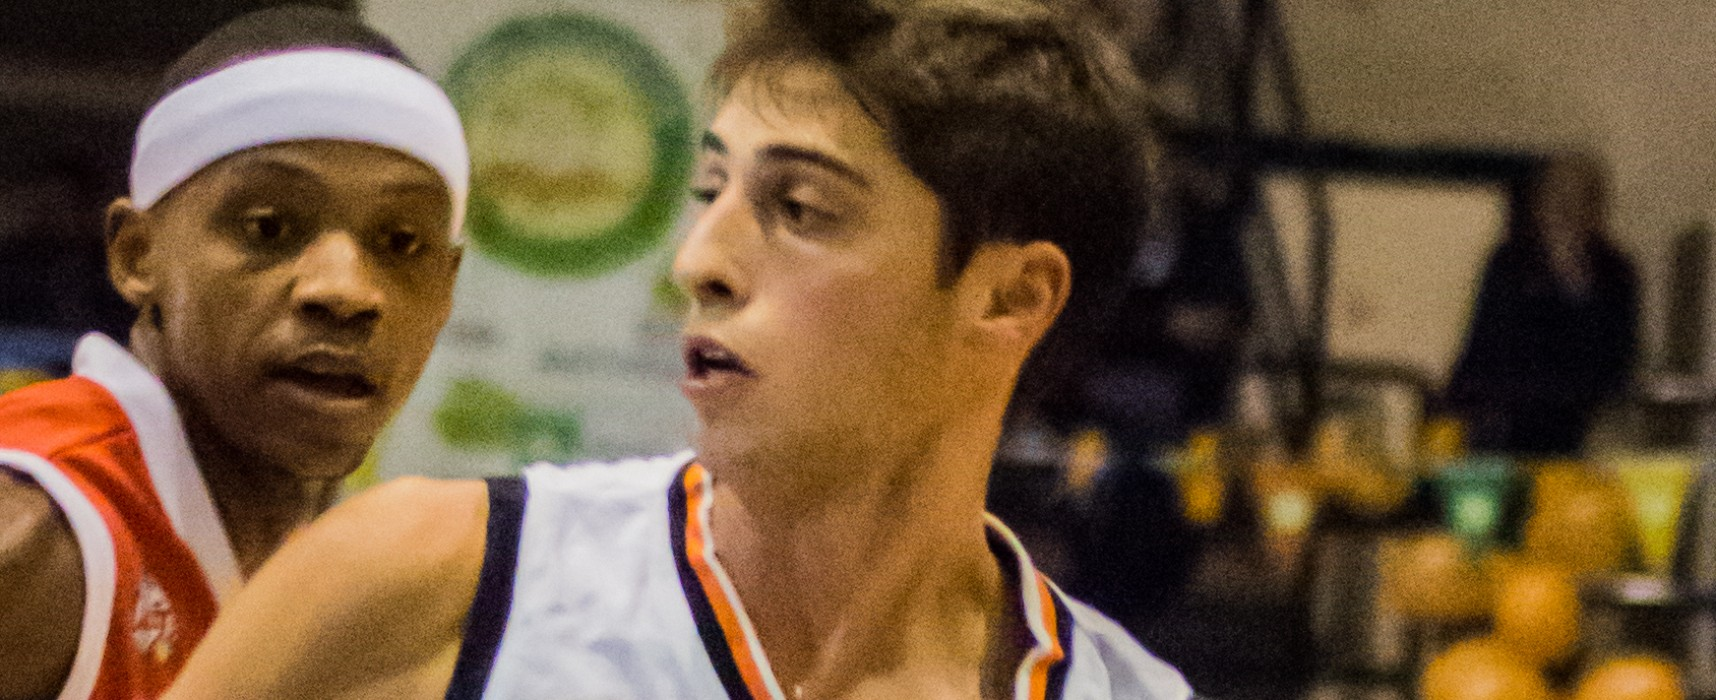 Ambrosia, Merletto rinforzo play-off